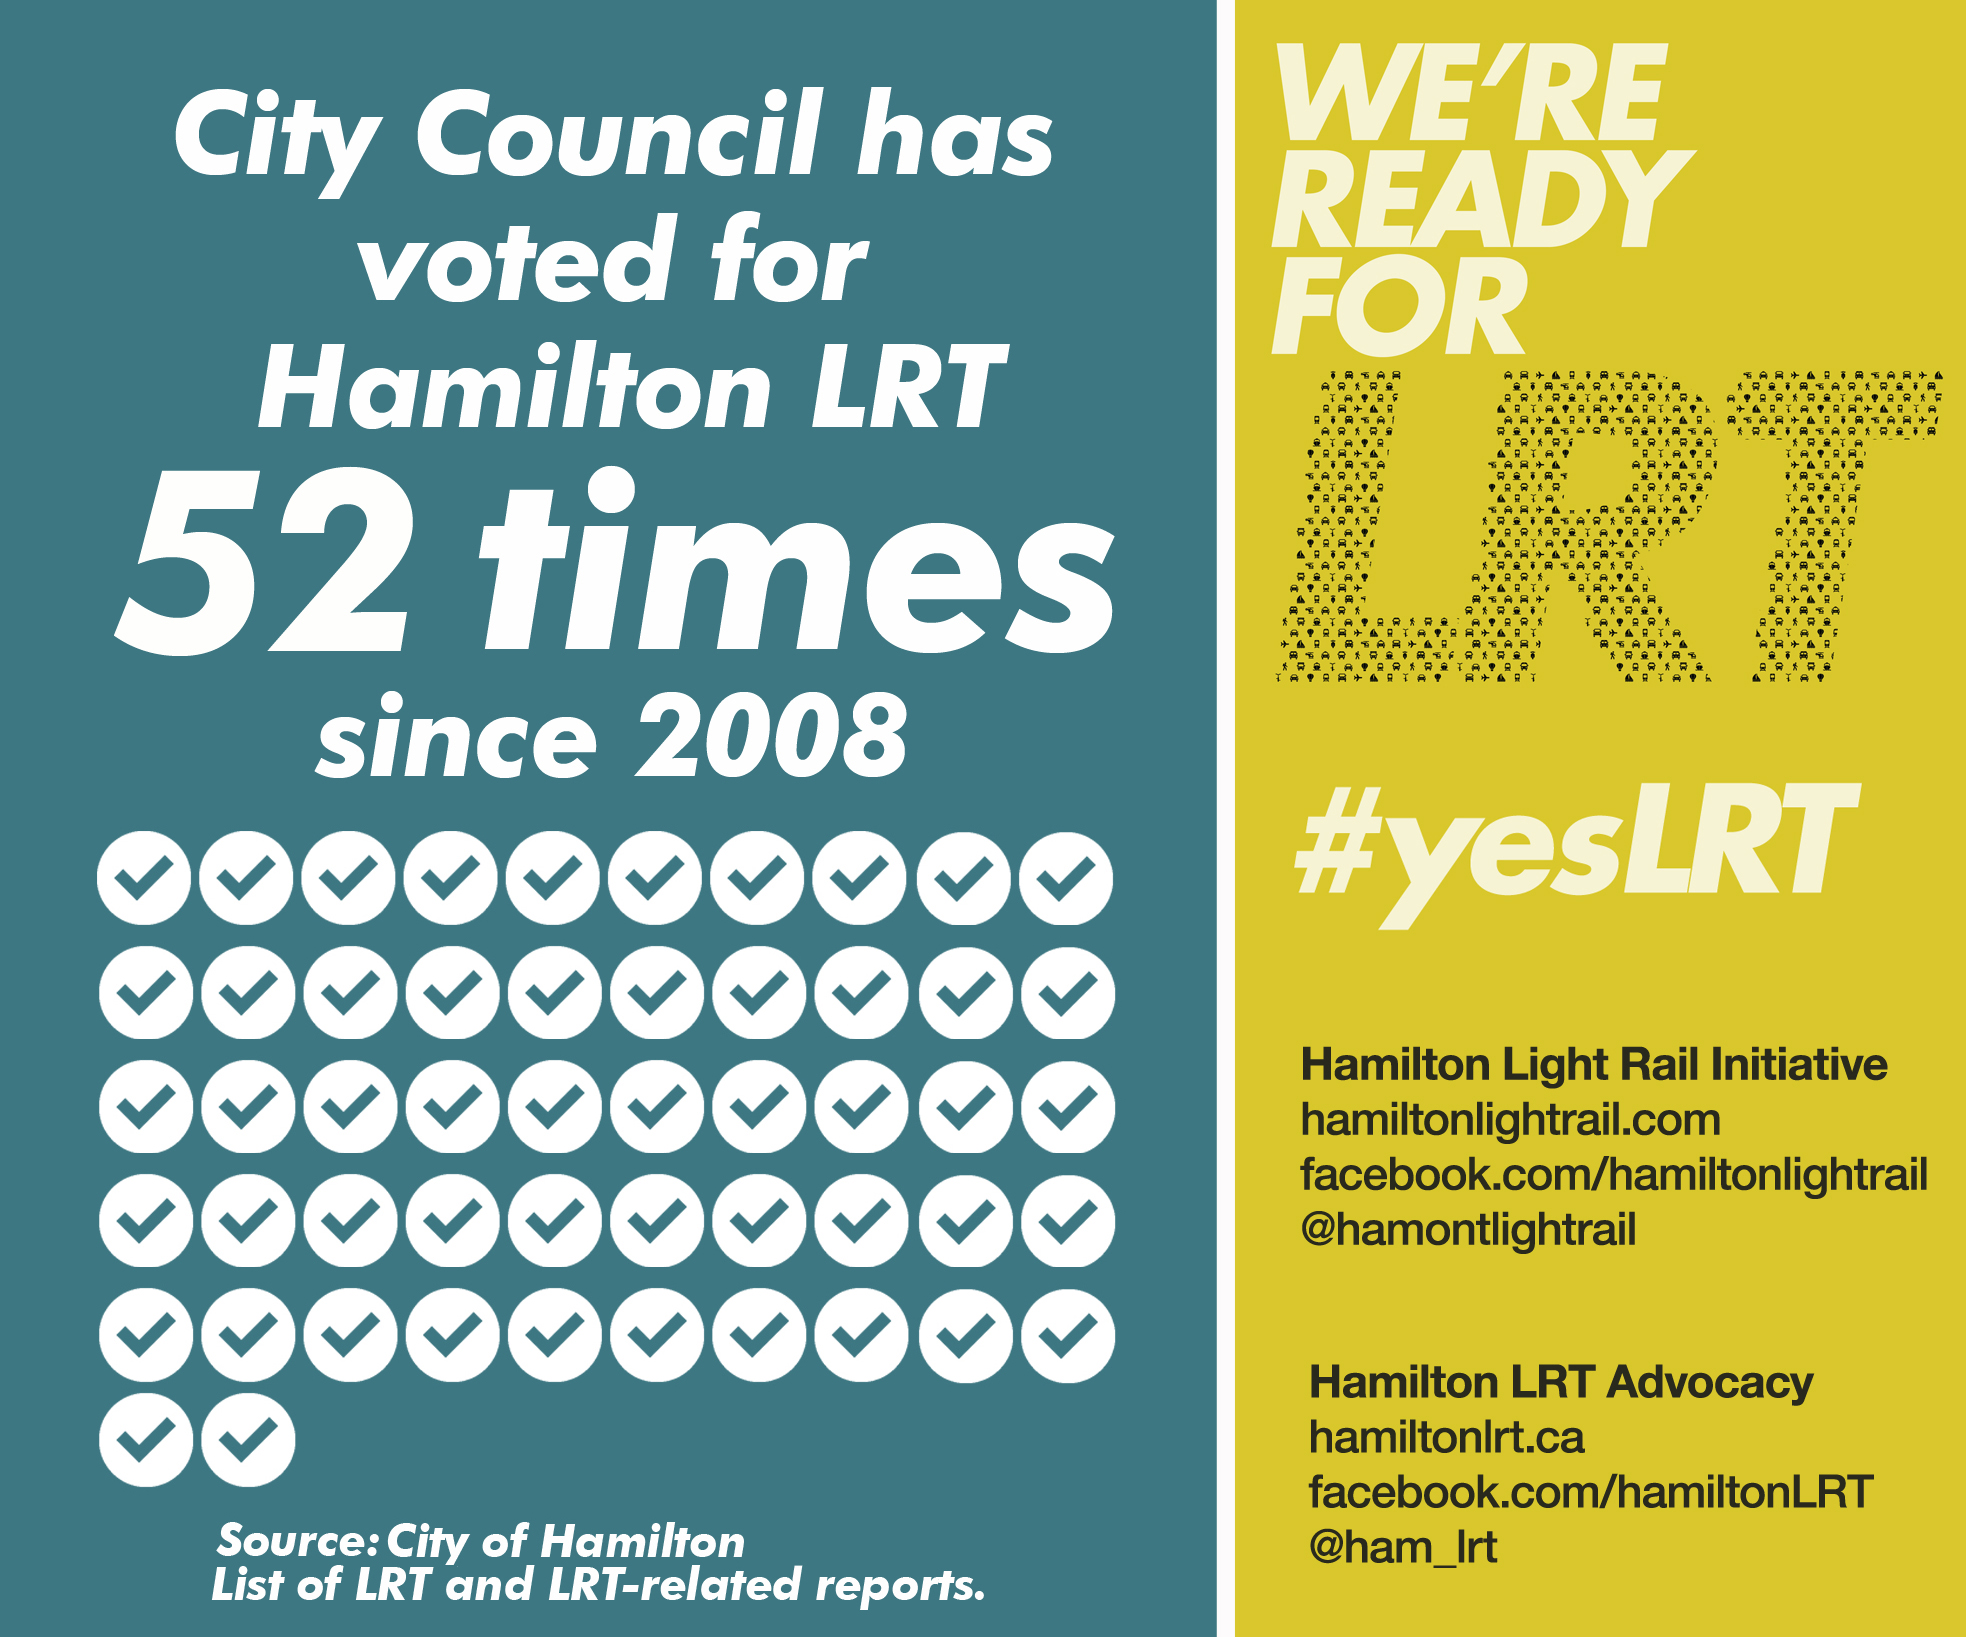 City Council has voted for Hamilton LRT 52 times since 2008